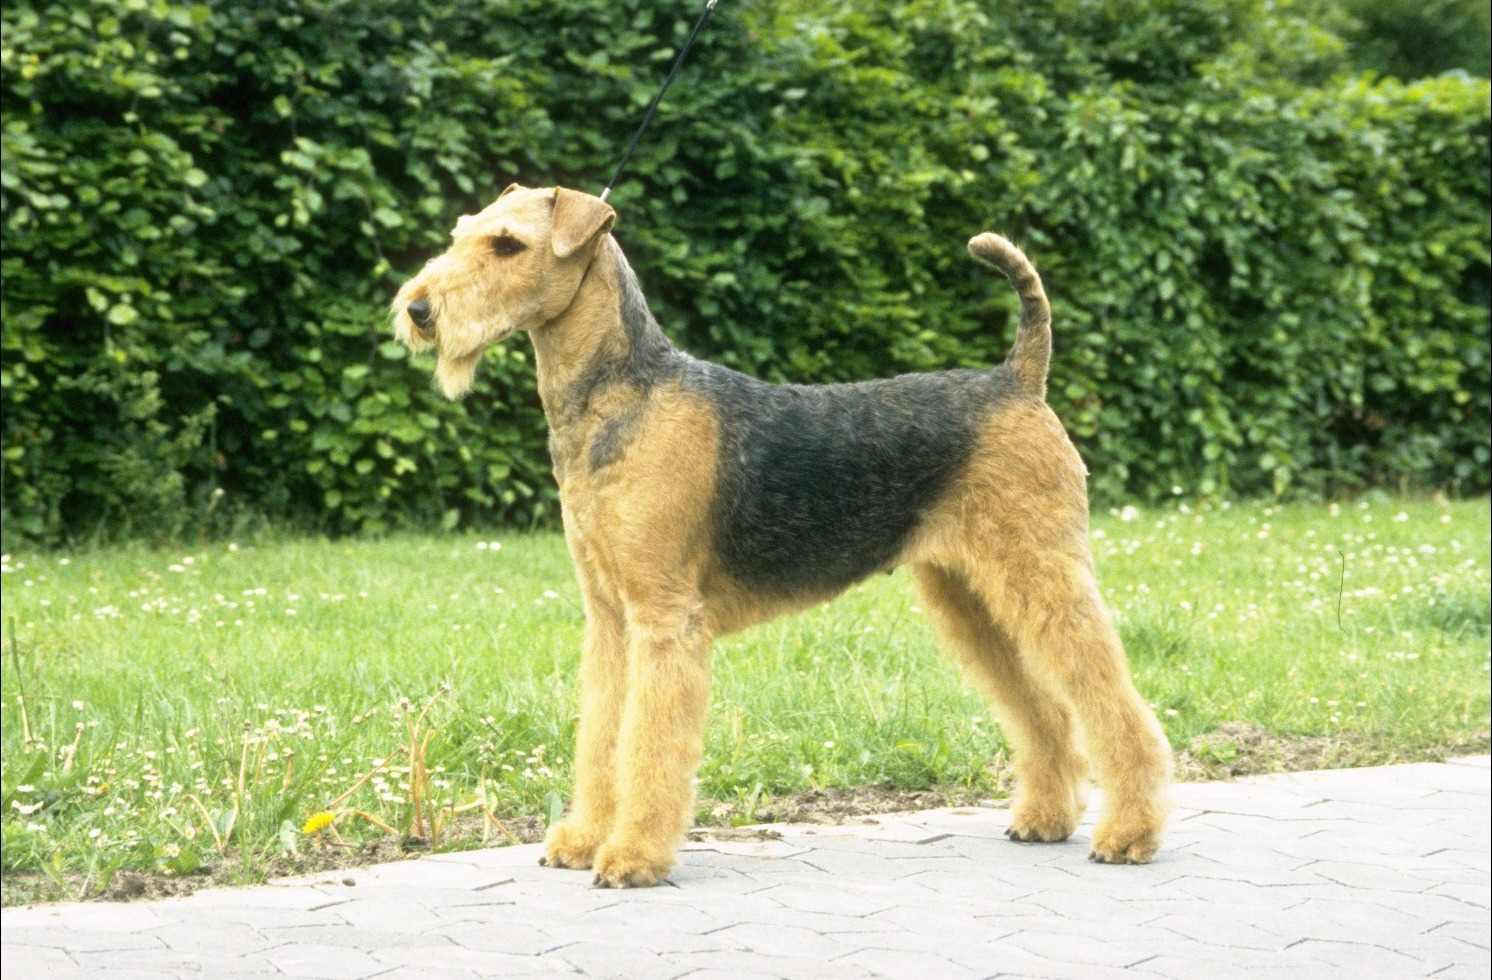 Airedale Terrier in the rack wallpaper